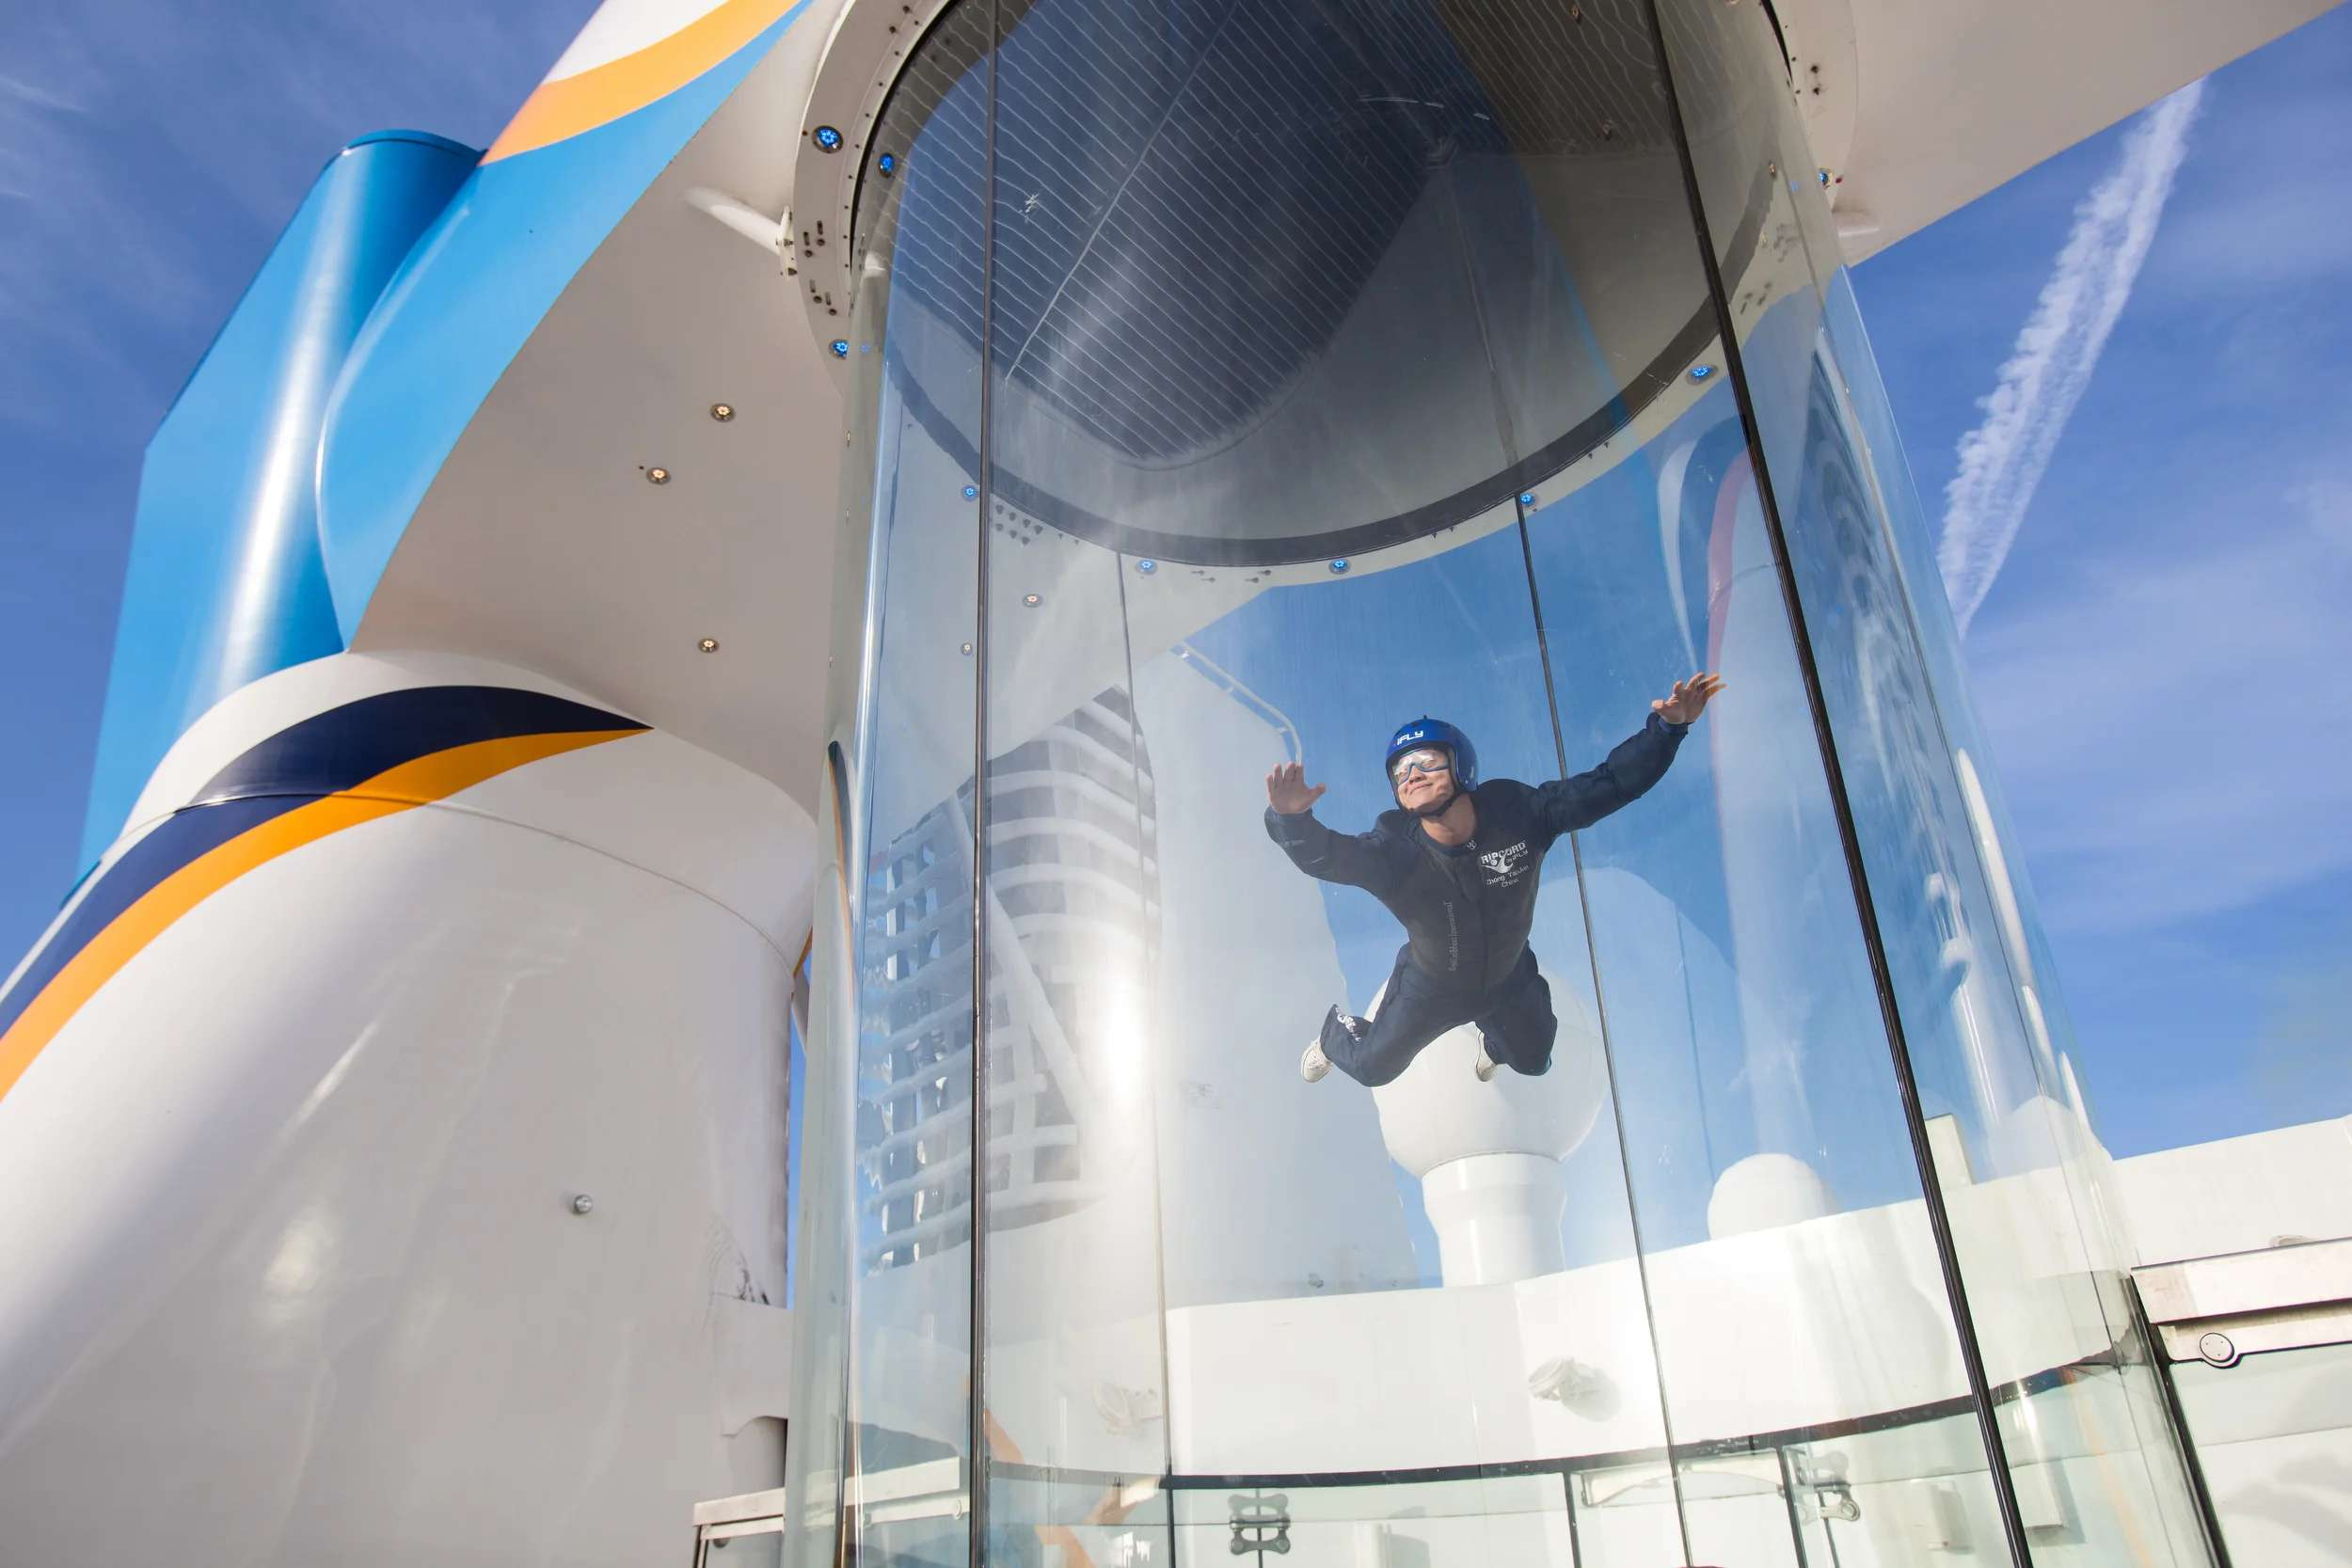 A skydiving simulator atop Royal Caribbean's Quantum of the Seas. (Photo courtesy of Royal Caribbean)